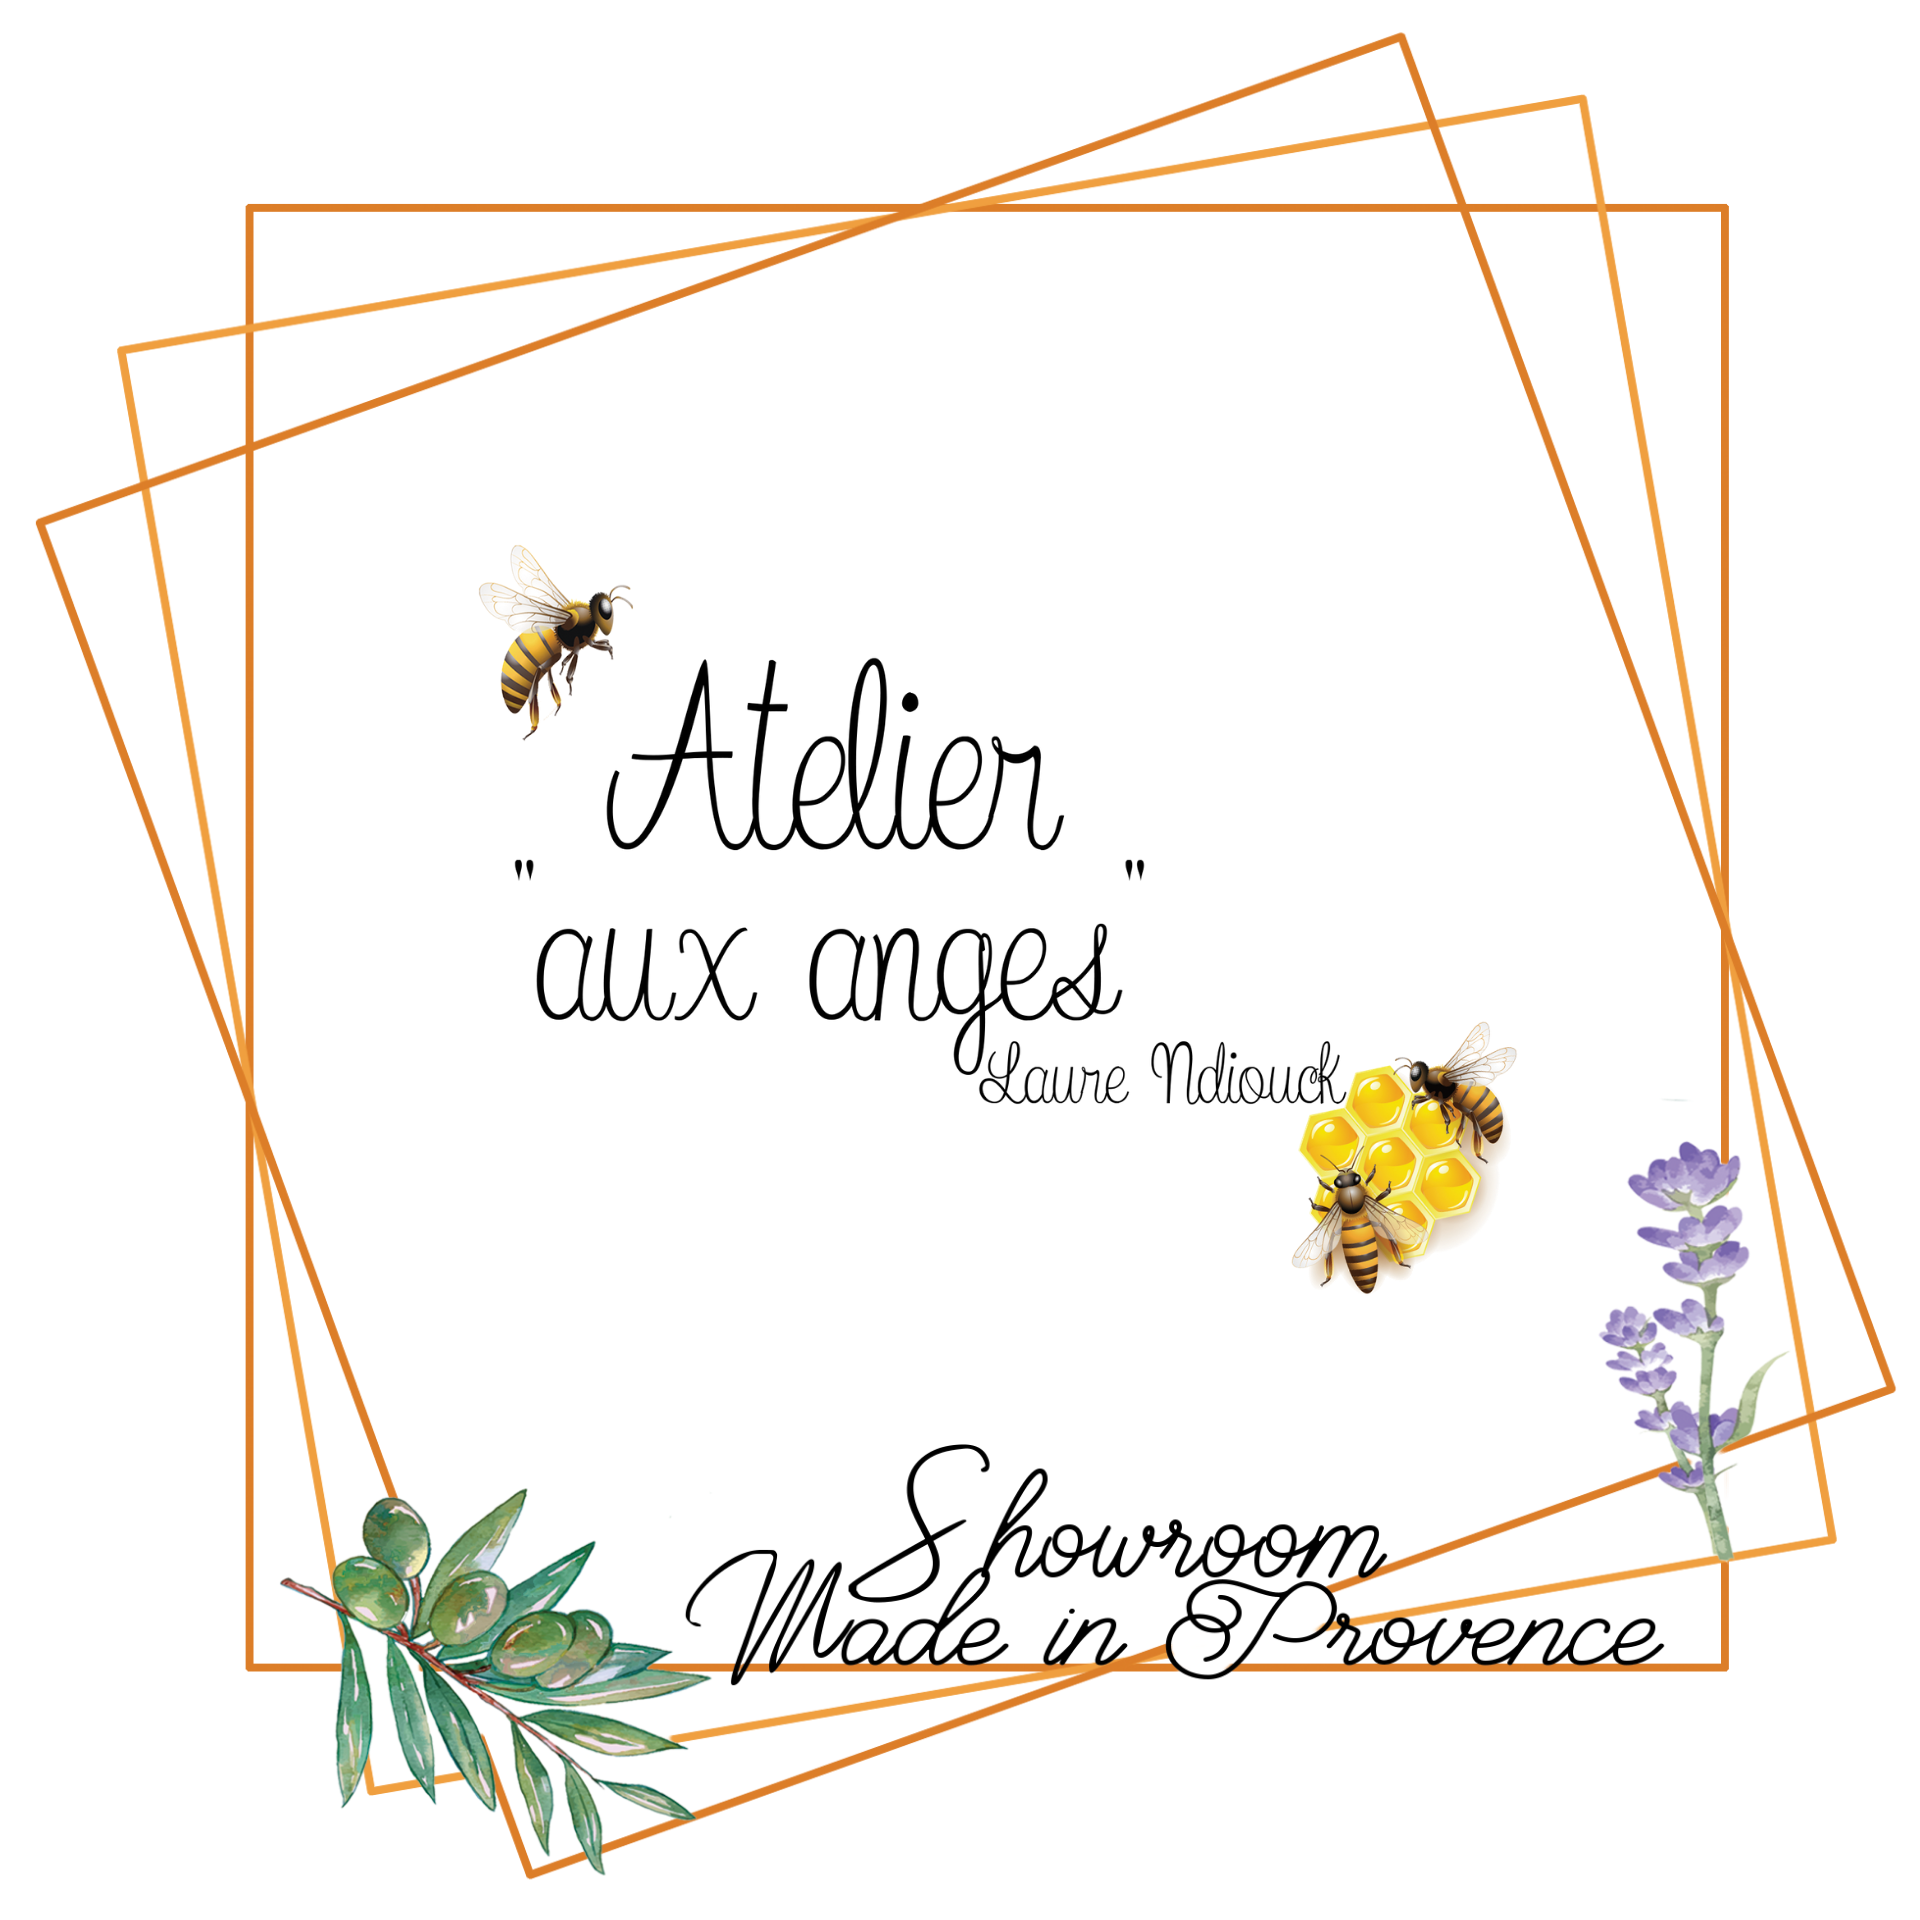 atelier aux anges showroom made in provence